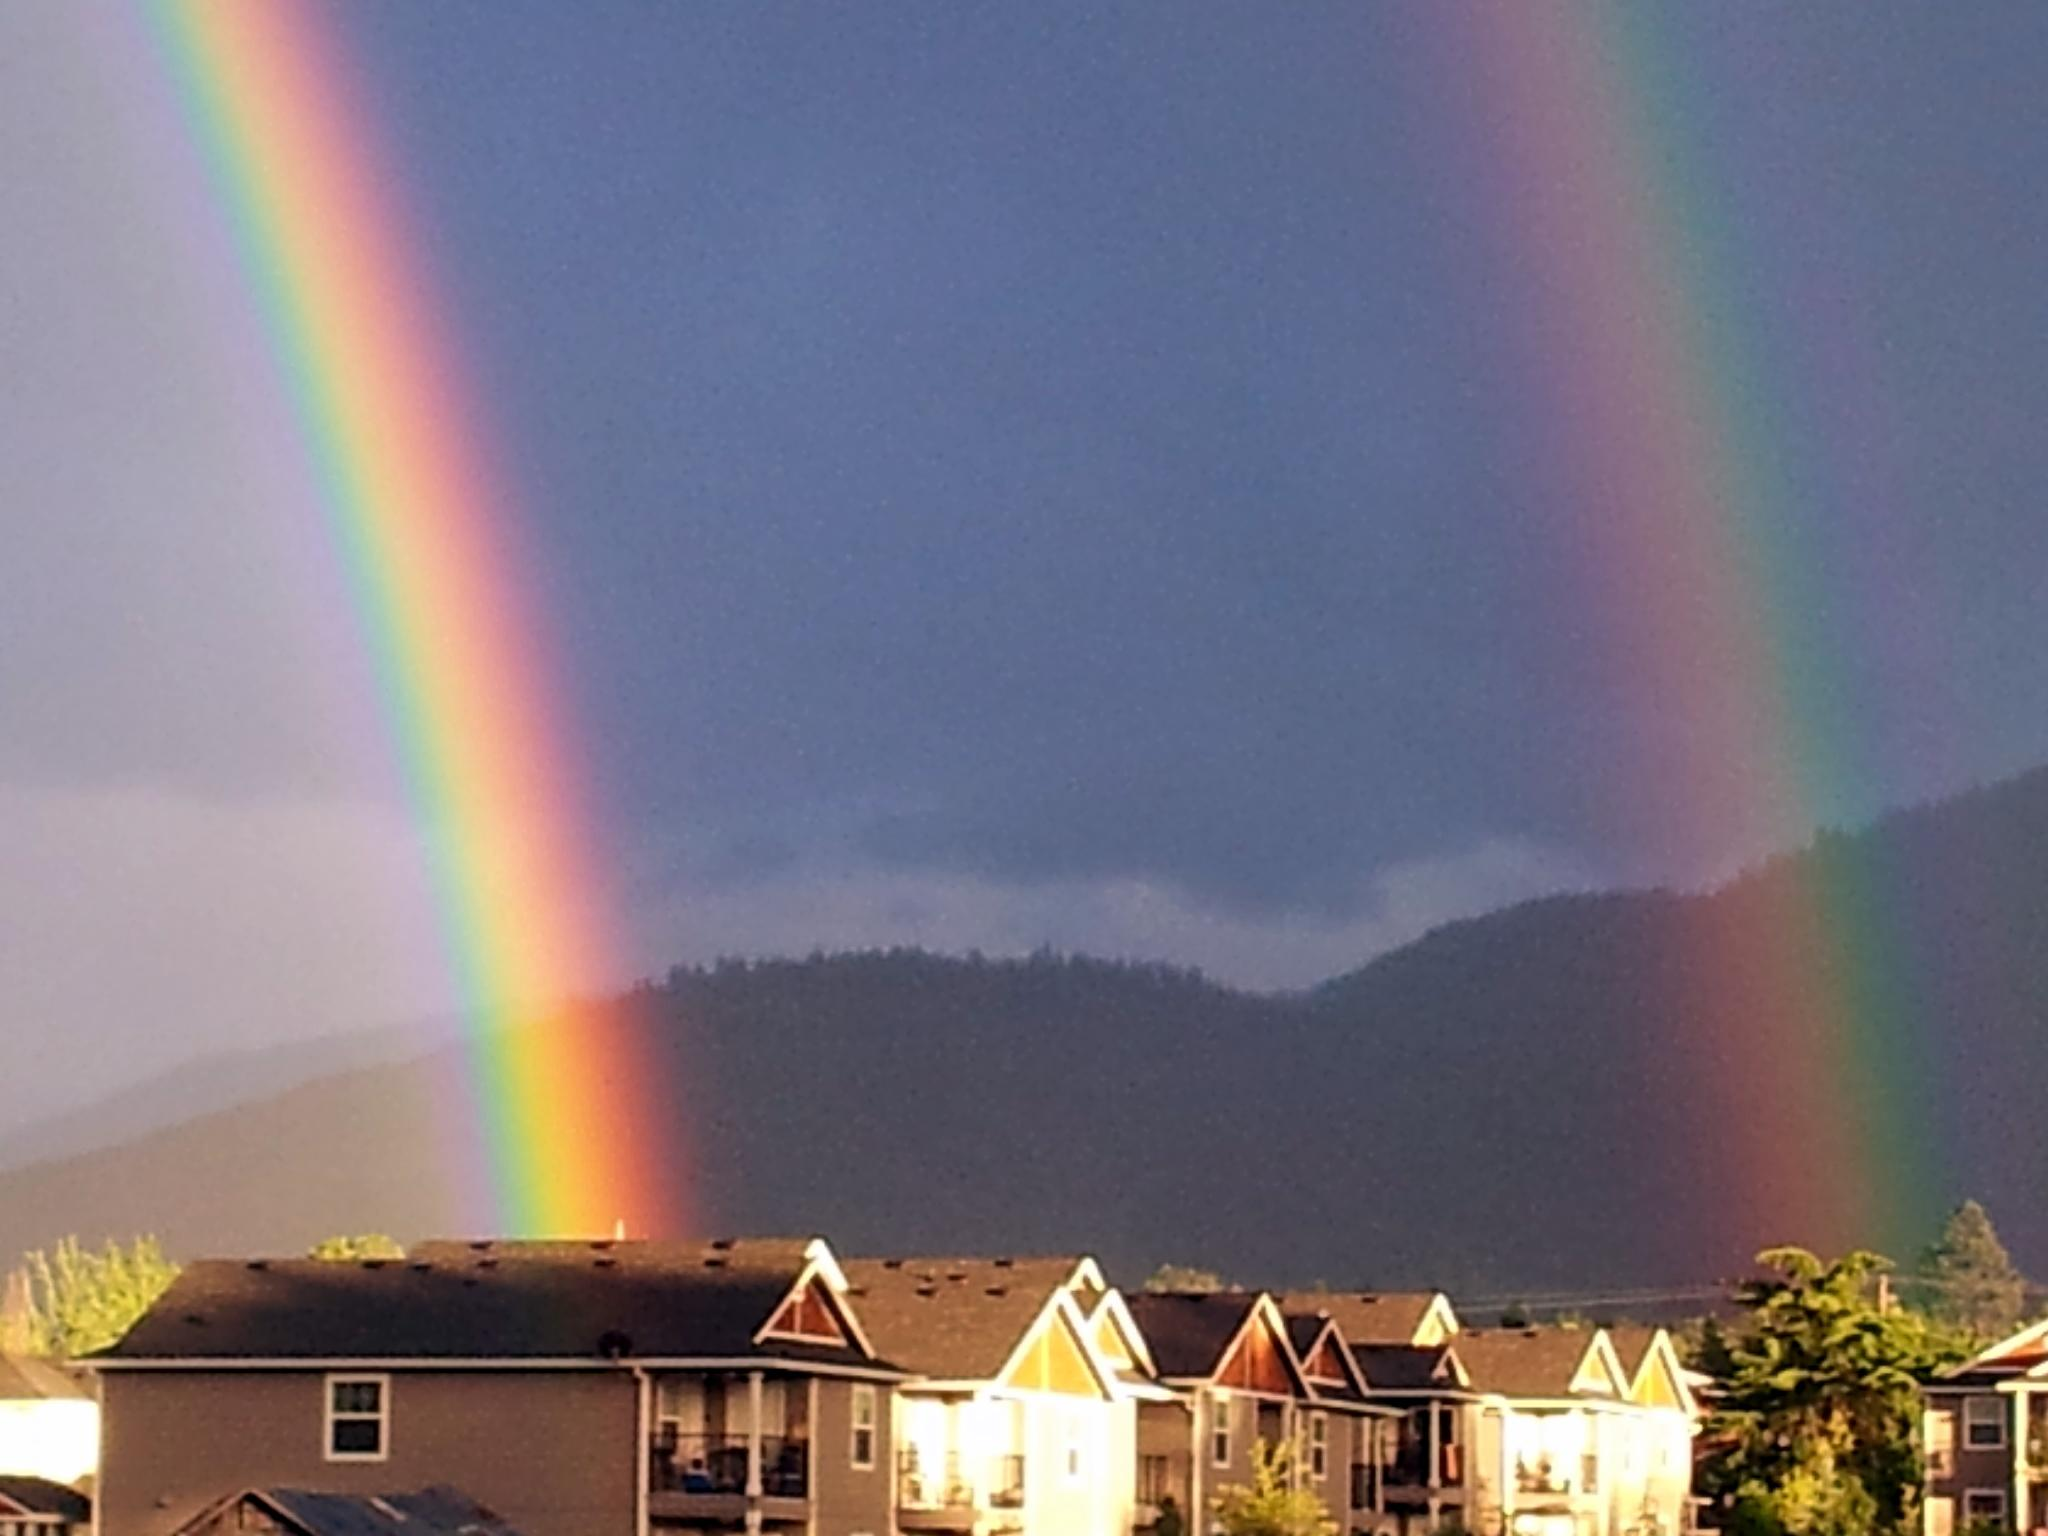 Photo in Landscape #rainbows #double #buildings #beautiful #promise #god #gift #forever #jesus #hope #faith #love #believe #vibrant #prism #colorfu; #landscape #nature #mountains